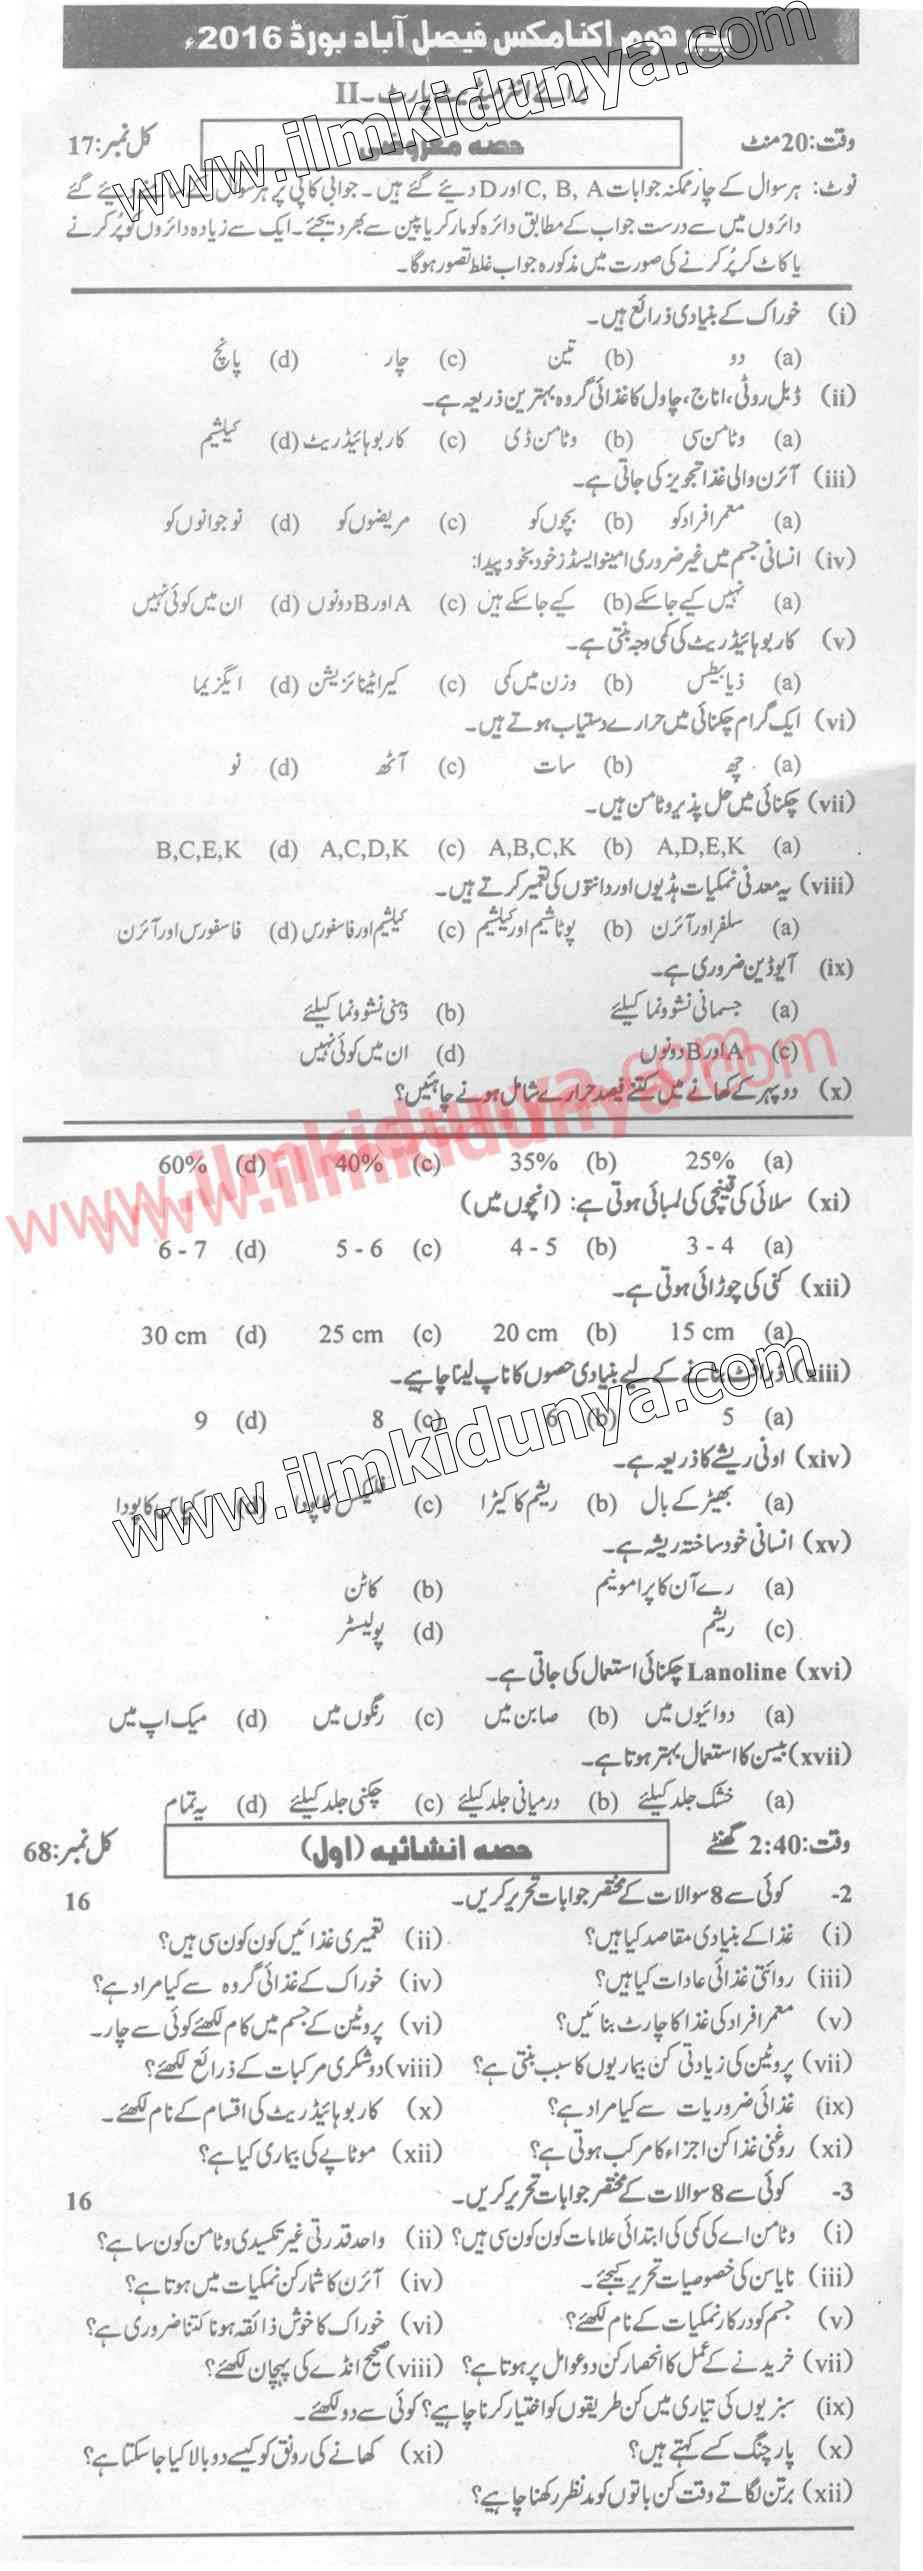 Past Papers 2016 Faisalabad Board Inter Part 2 Home Economics